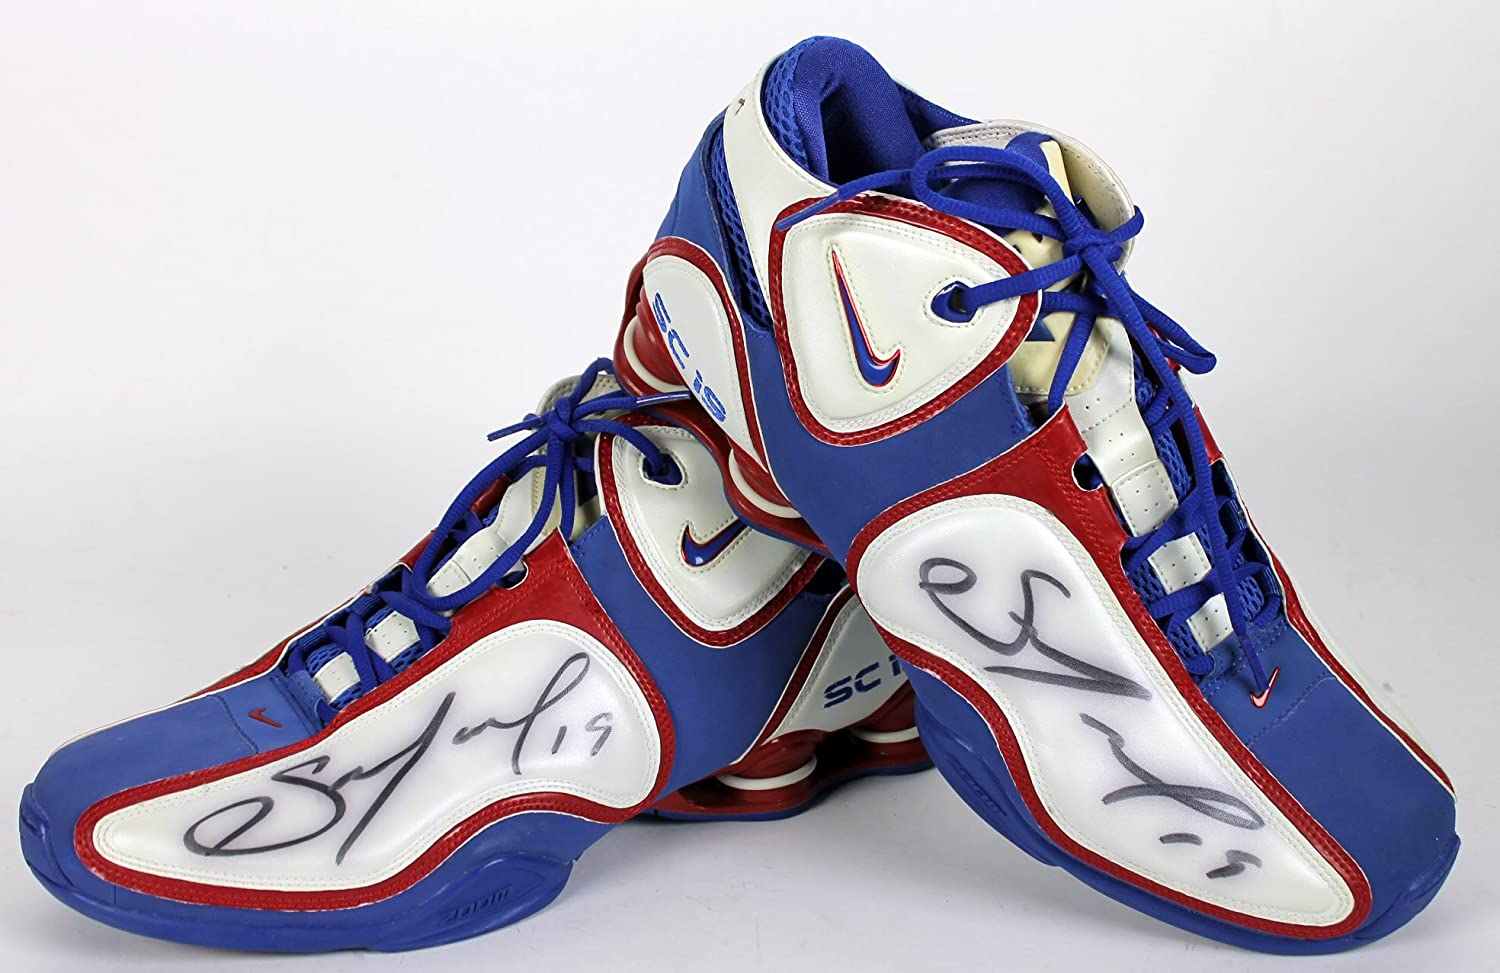 new product 1cfb4 13be8 Clippers Sam Cassell Signed Game Used Size 13.5 Nike Shox Bounce Shoes BAS  at Amazon s Sports Collectibles Store